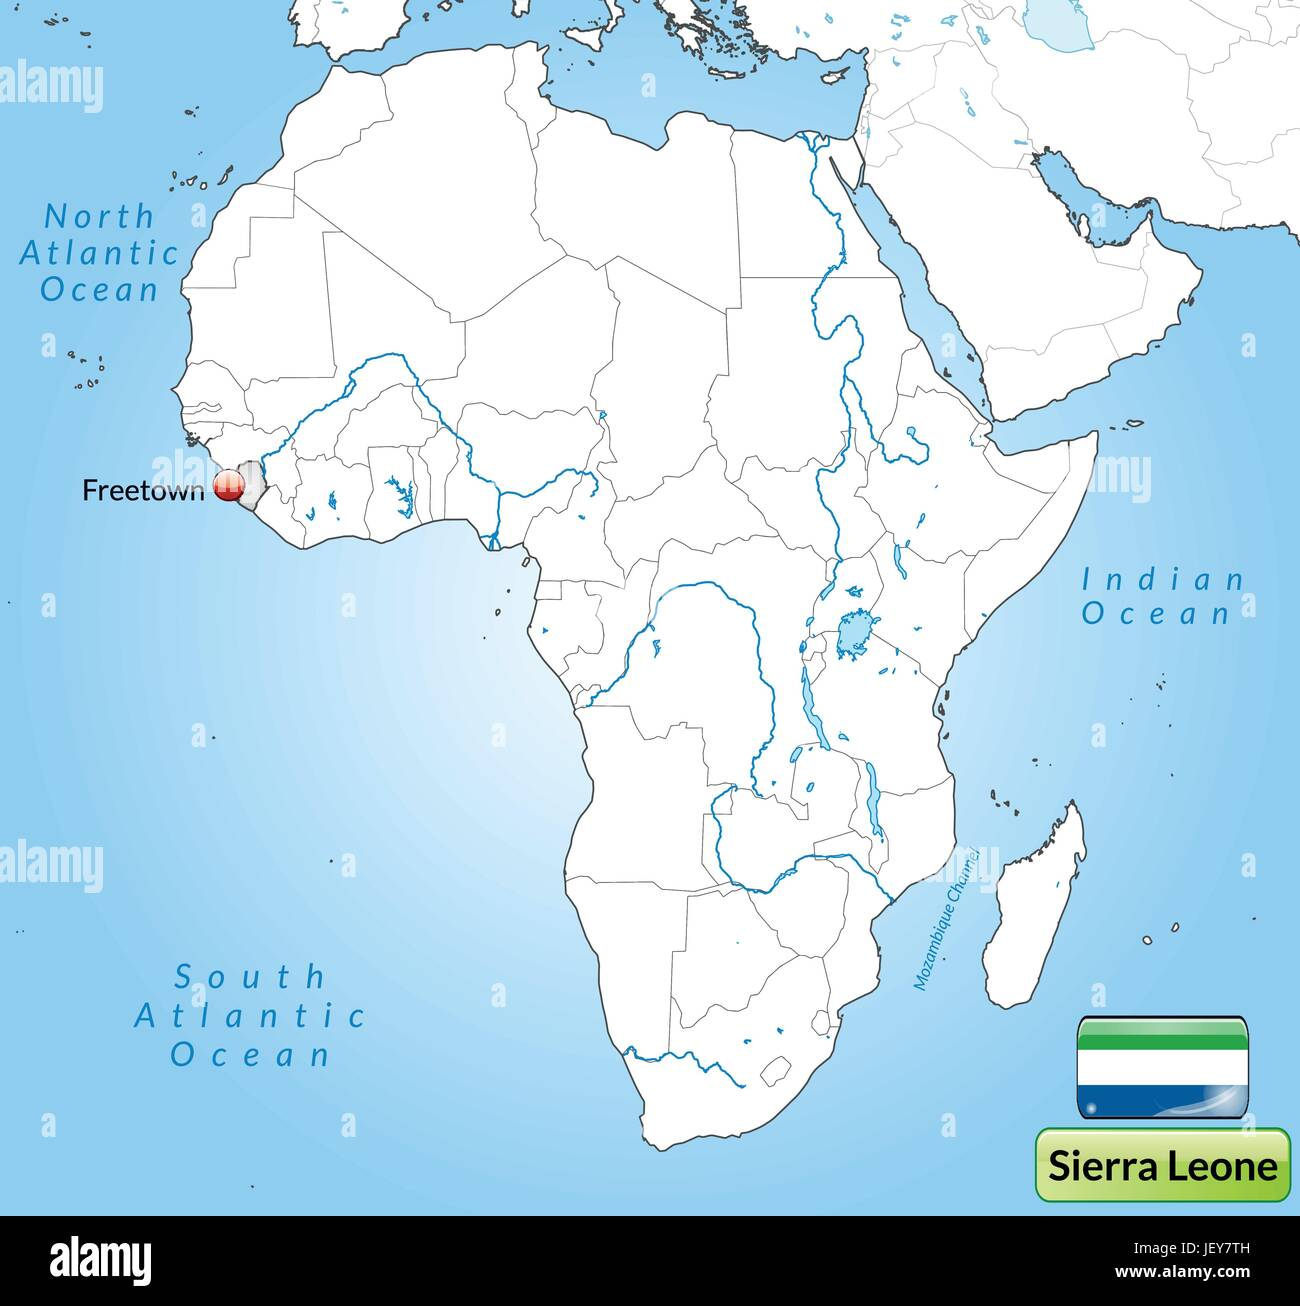 map of sierra leone with capitals in gray - Stock Image